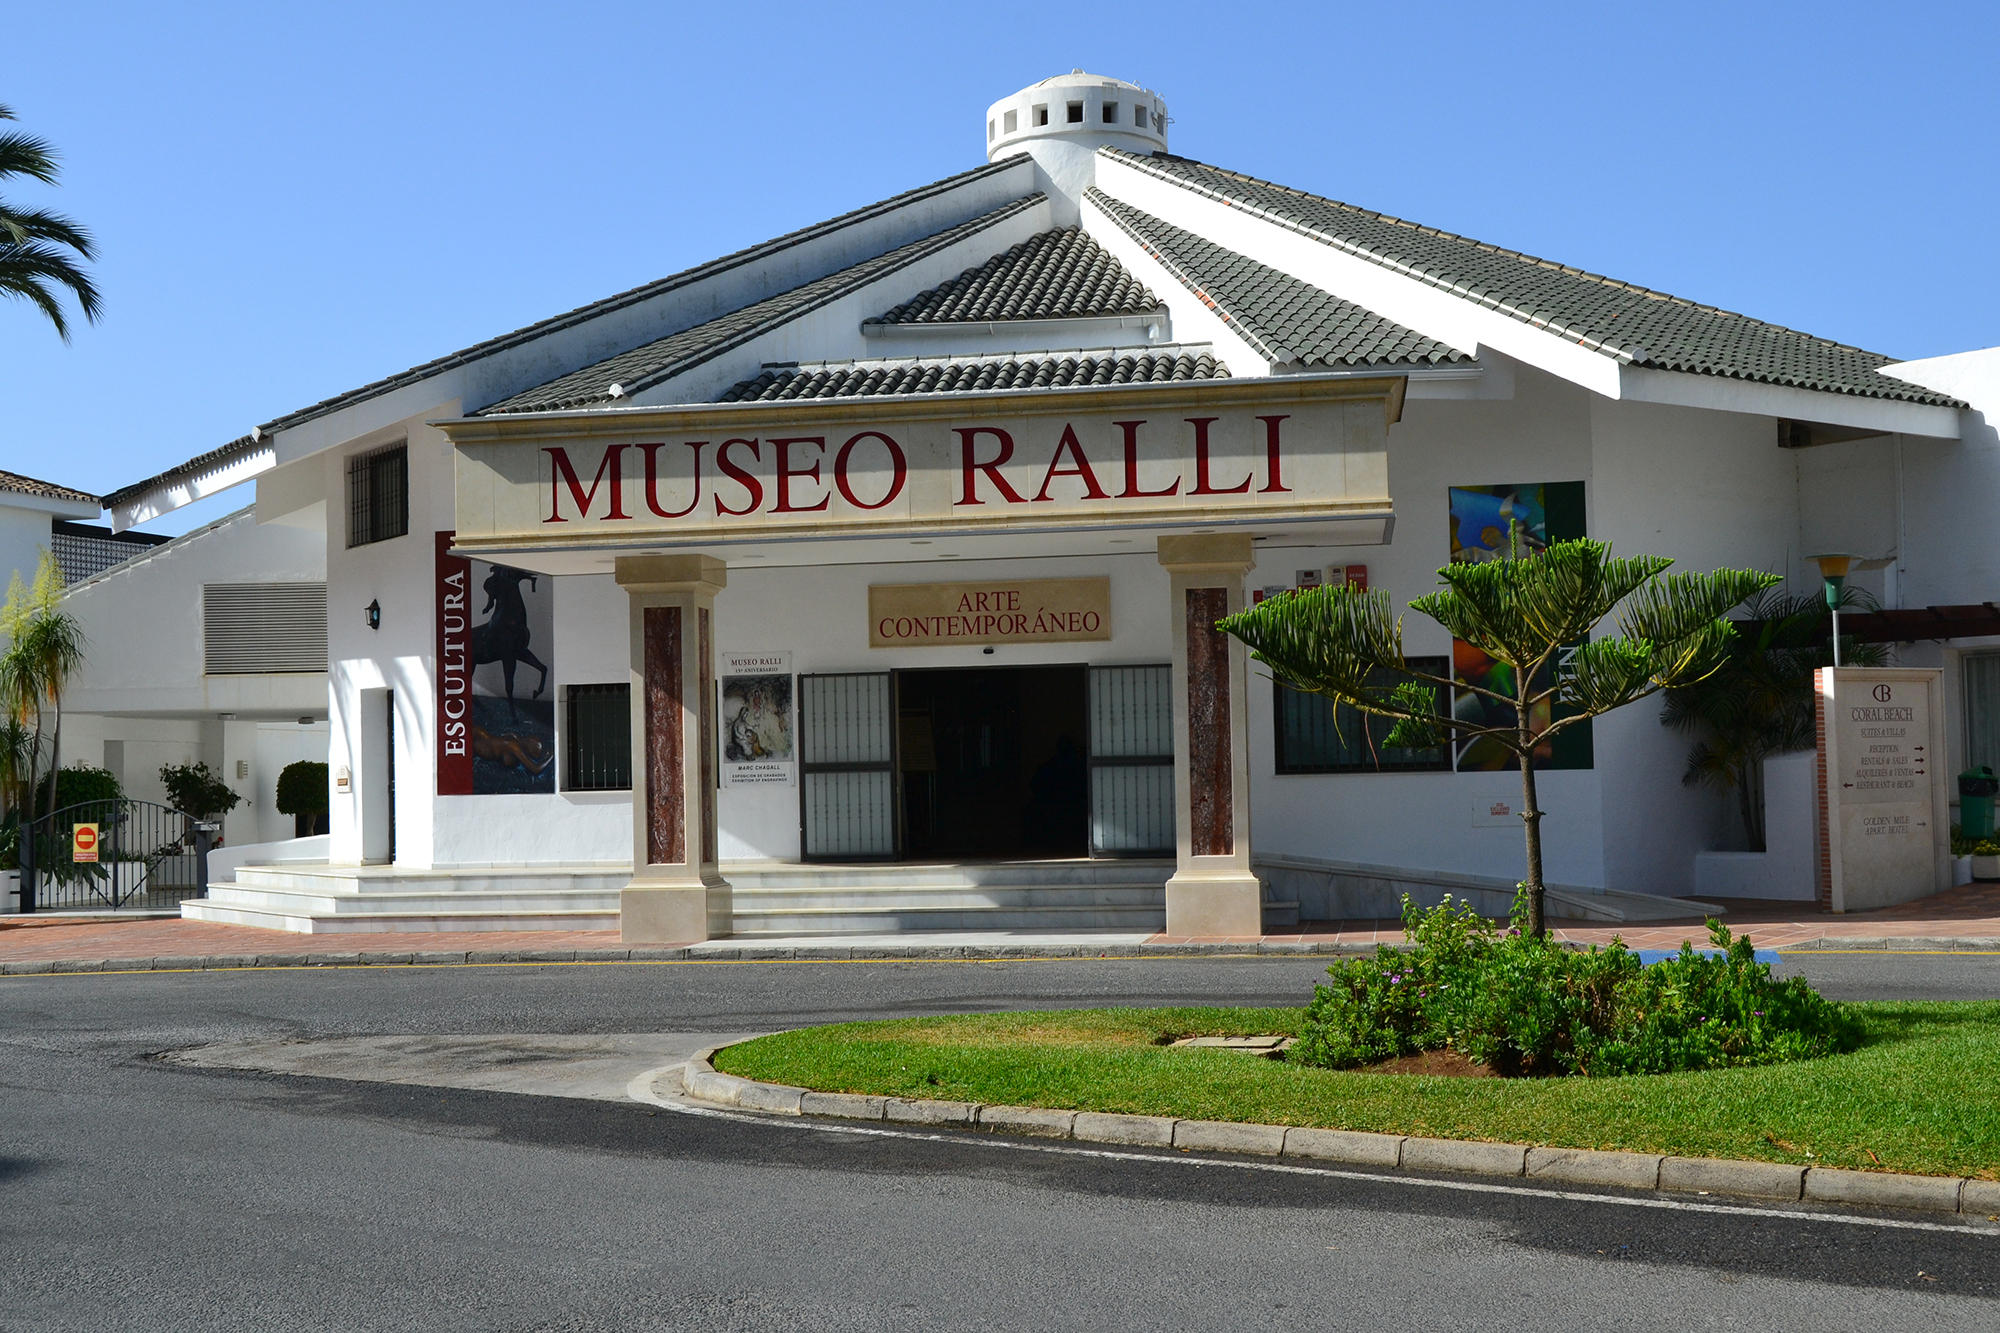 Museo.Marbella The Ralli Museums